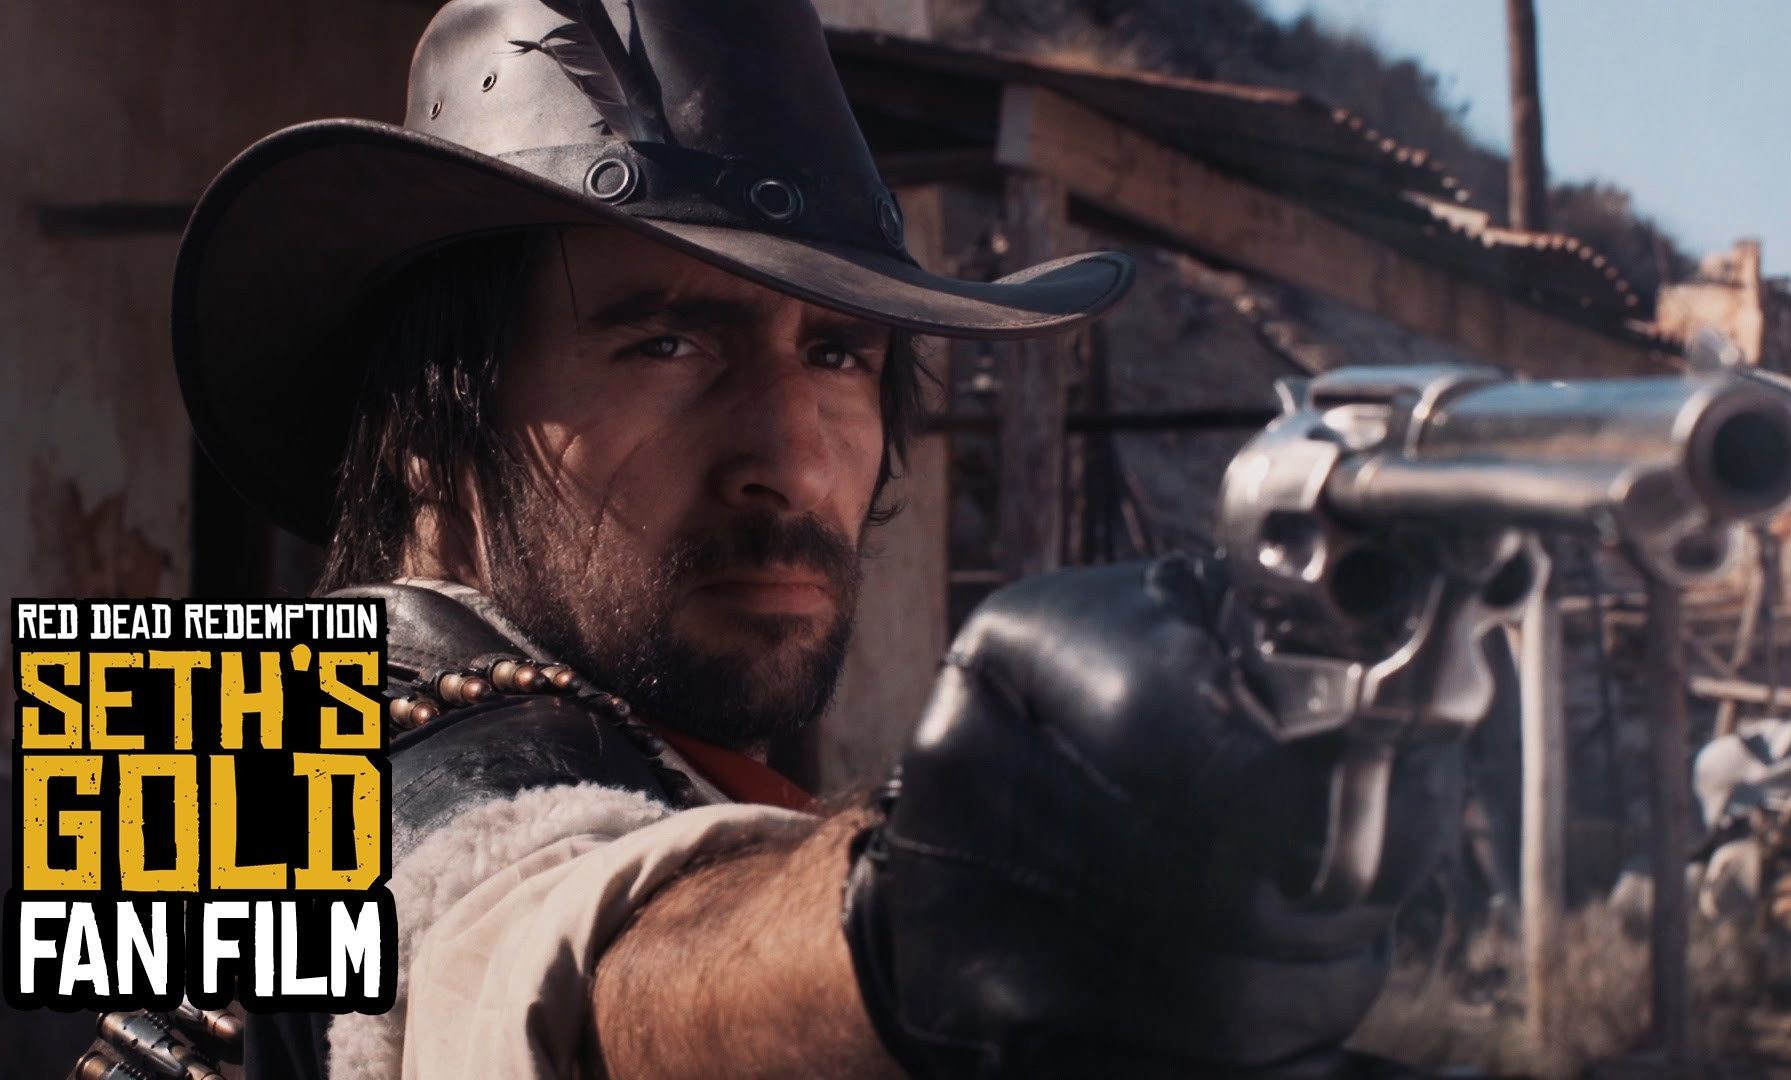 RED DEAD REDEMPTION: SETH'S GOLD